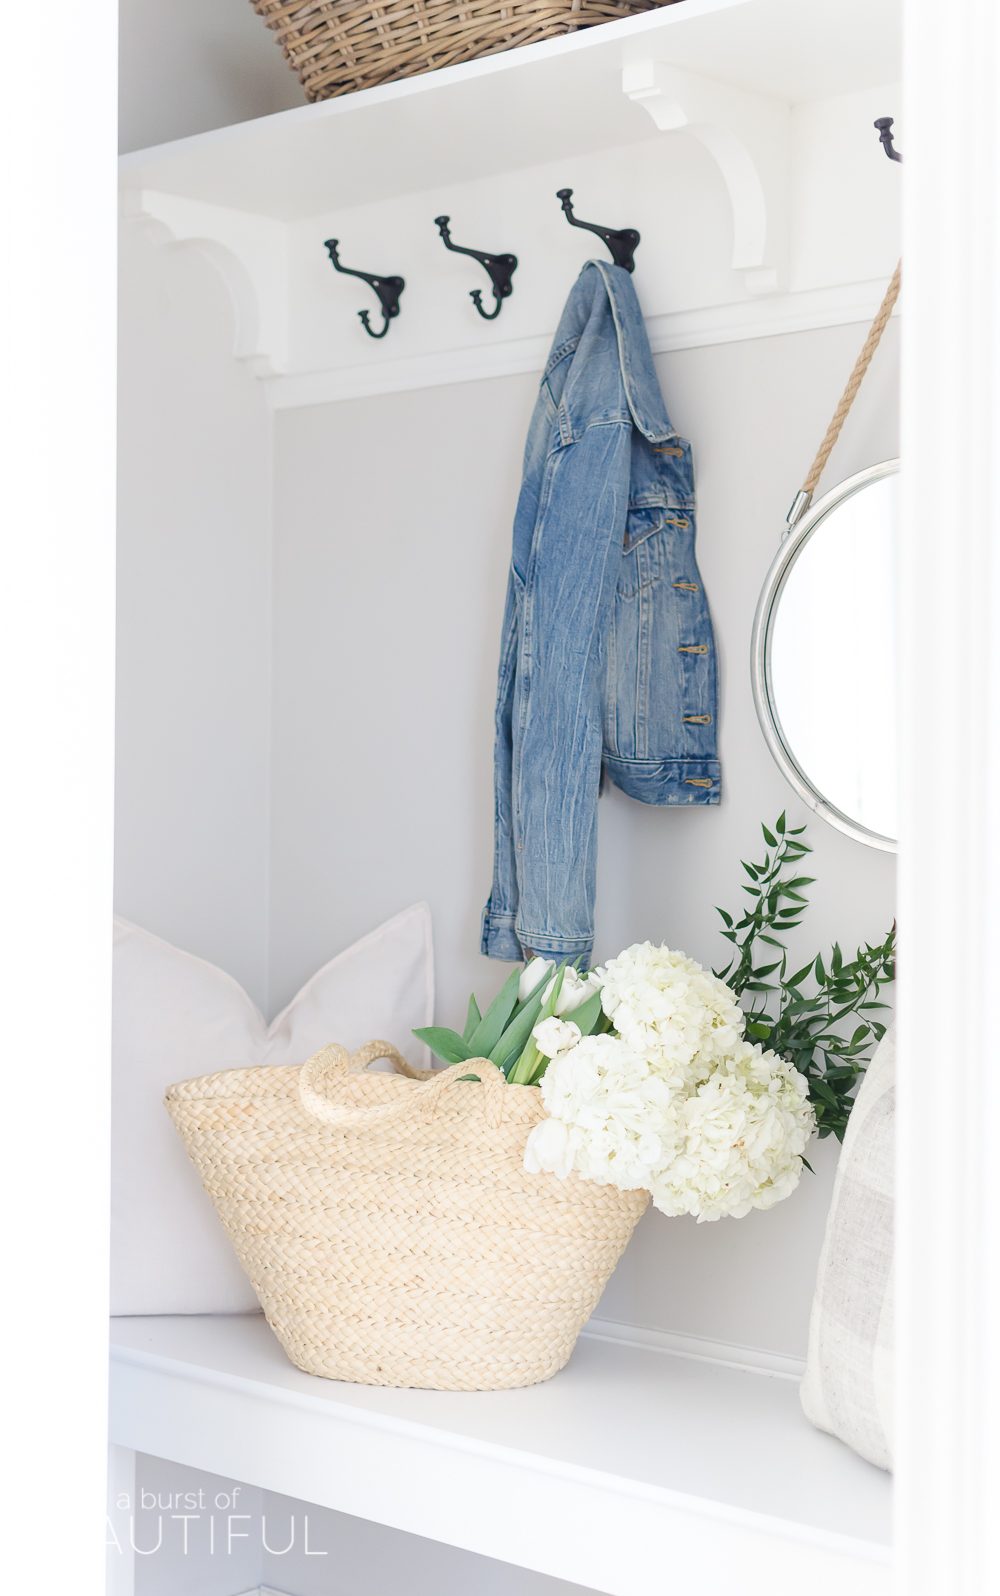 A pretty and functional mudroom is ready for the season in this modern farmhouse's bright and inviting spring home tour.